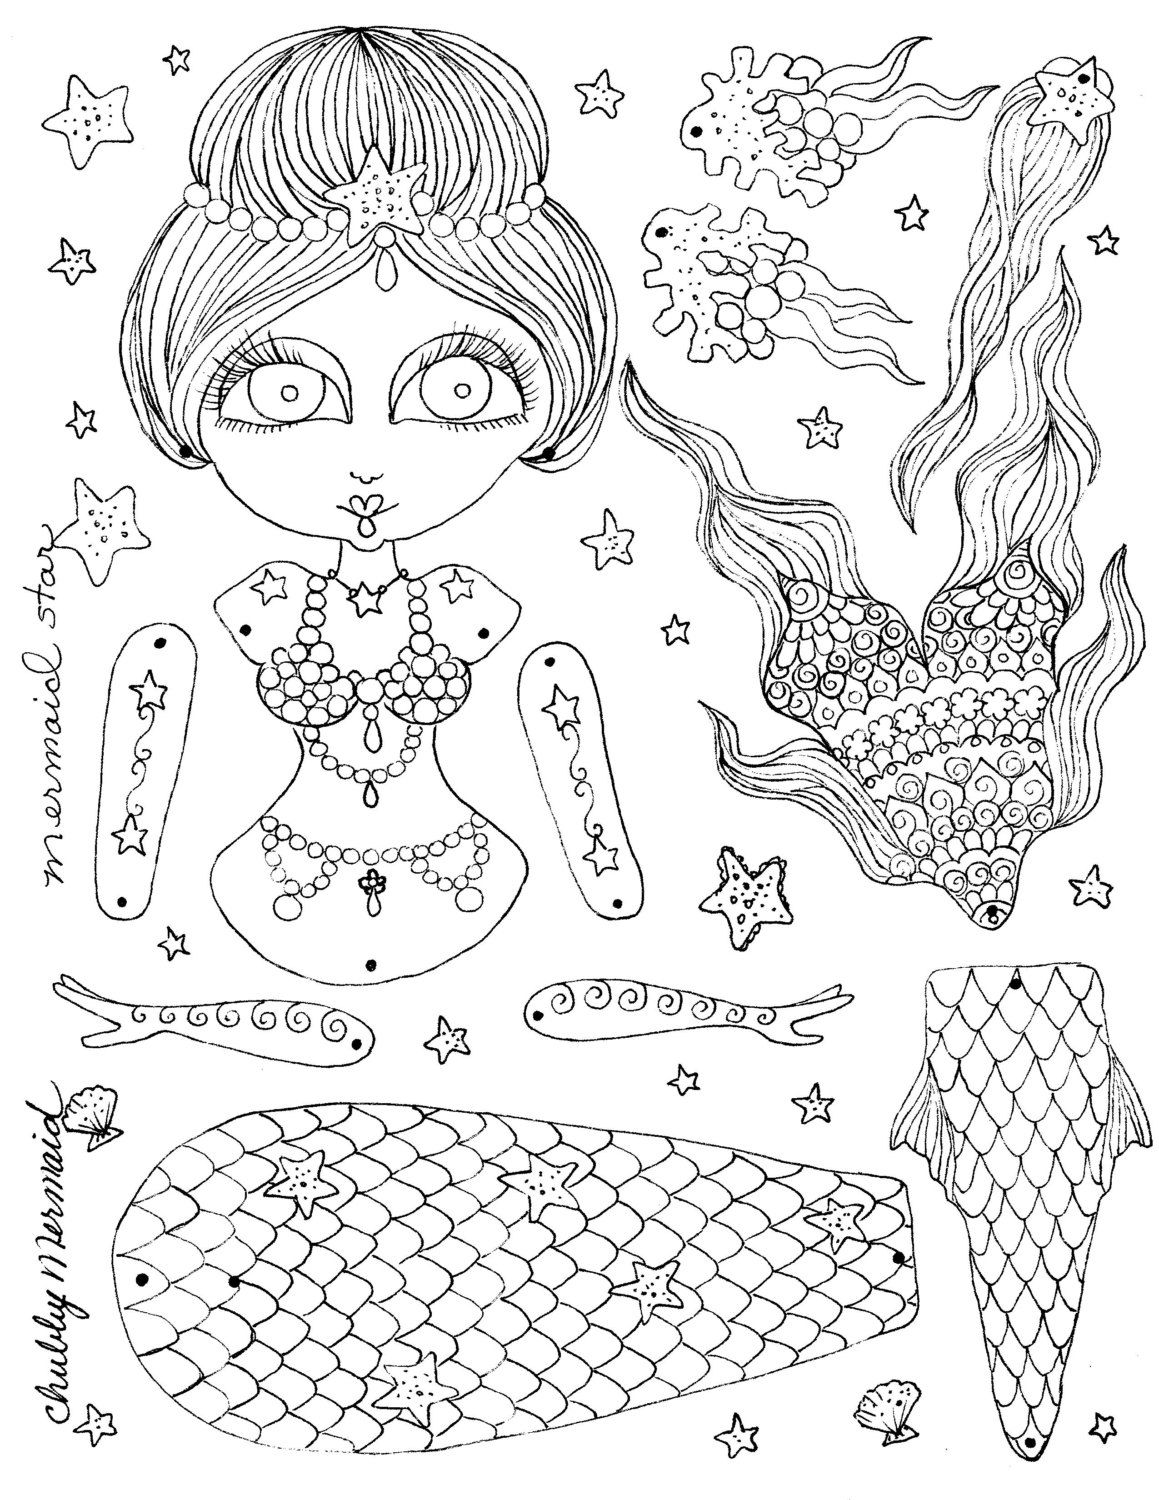 mermaid paper doll coloring pages mini maiden mermaid paper dolls going deep into the sea doll coloring pages mermaid paper